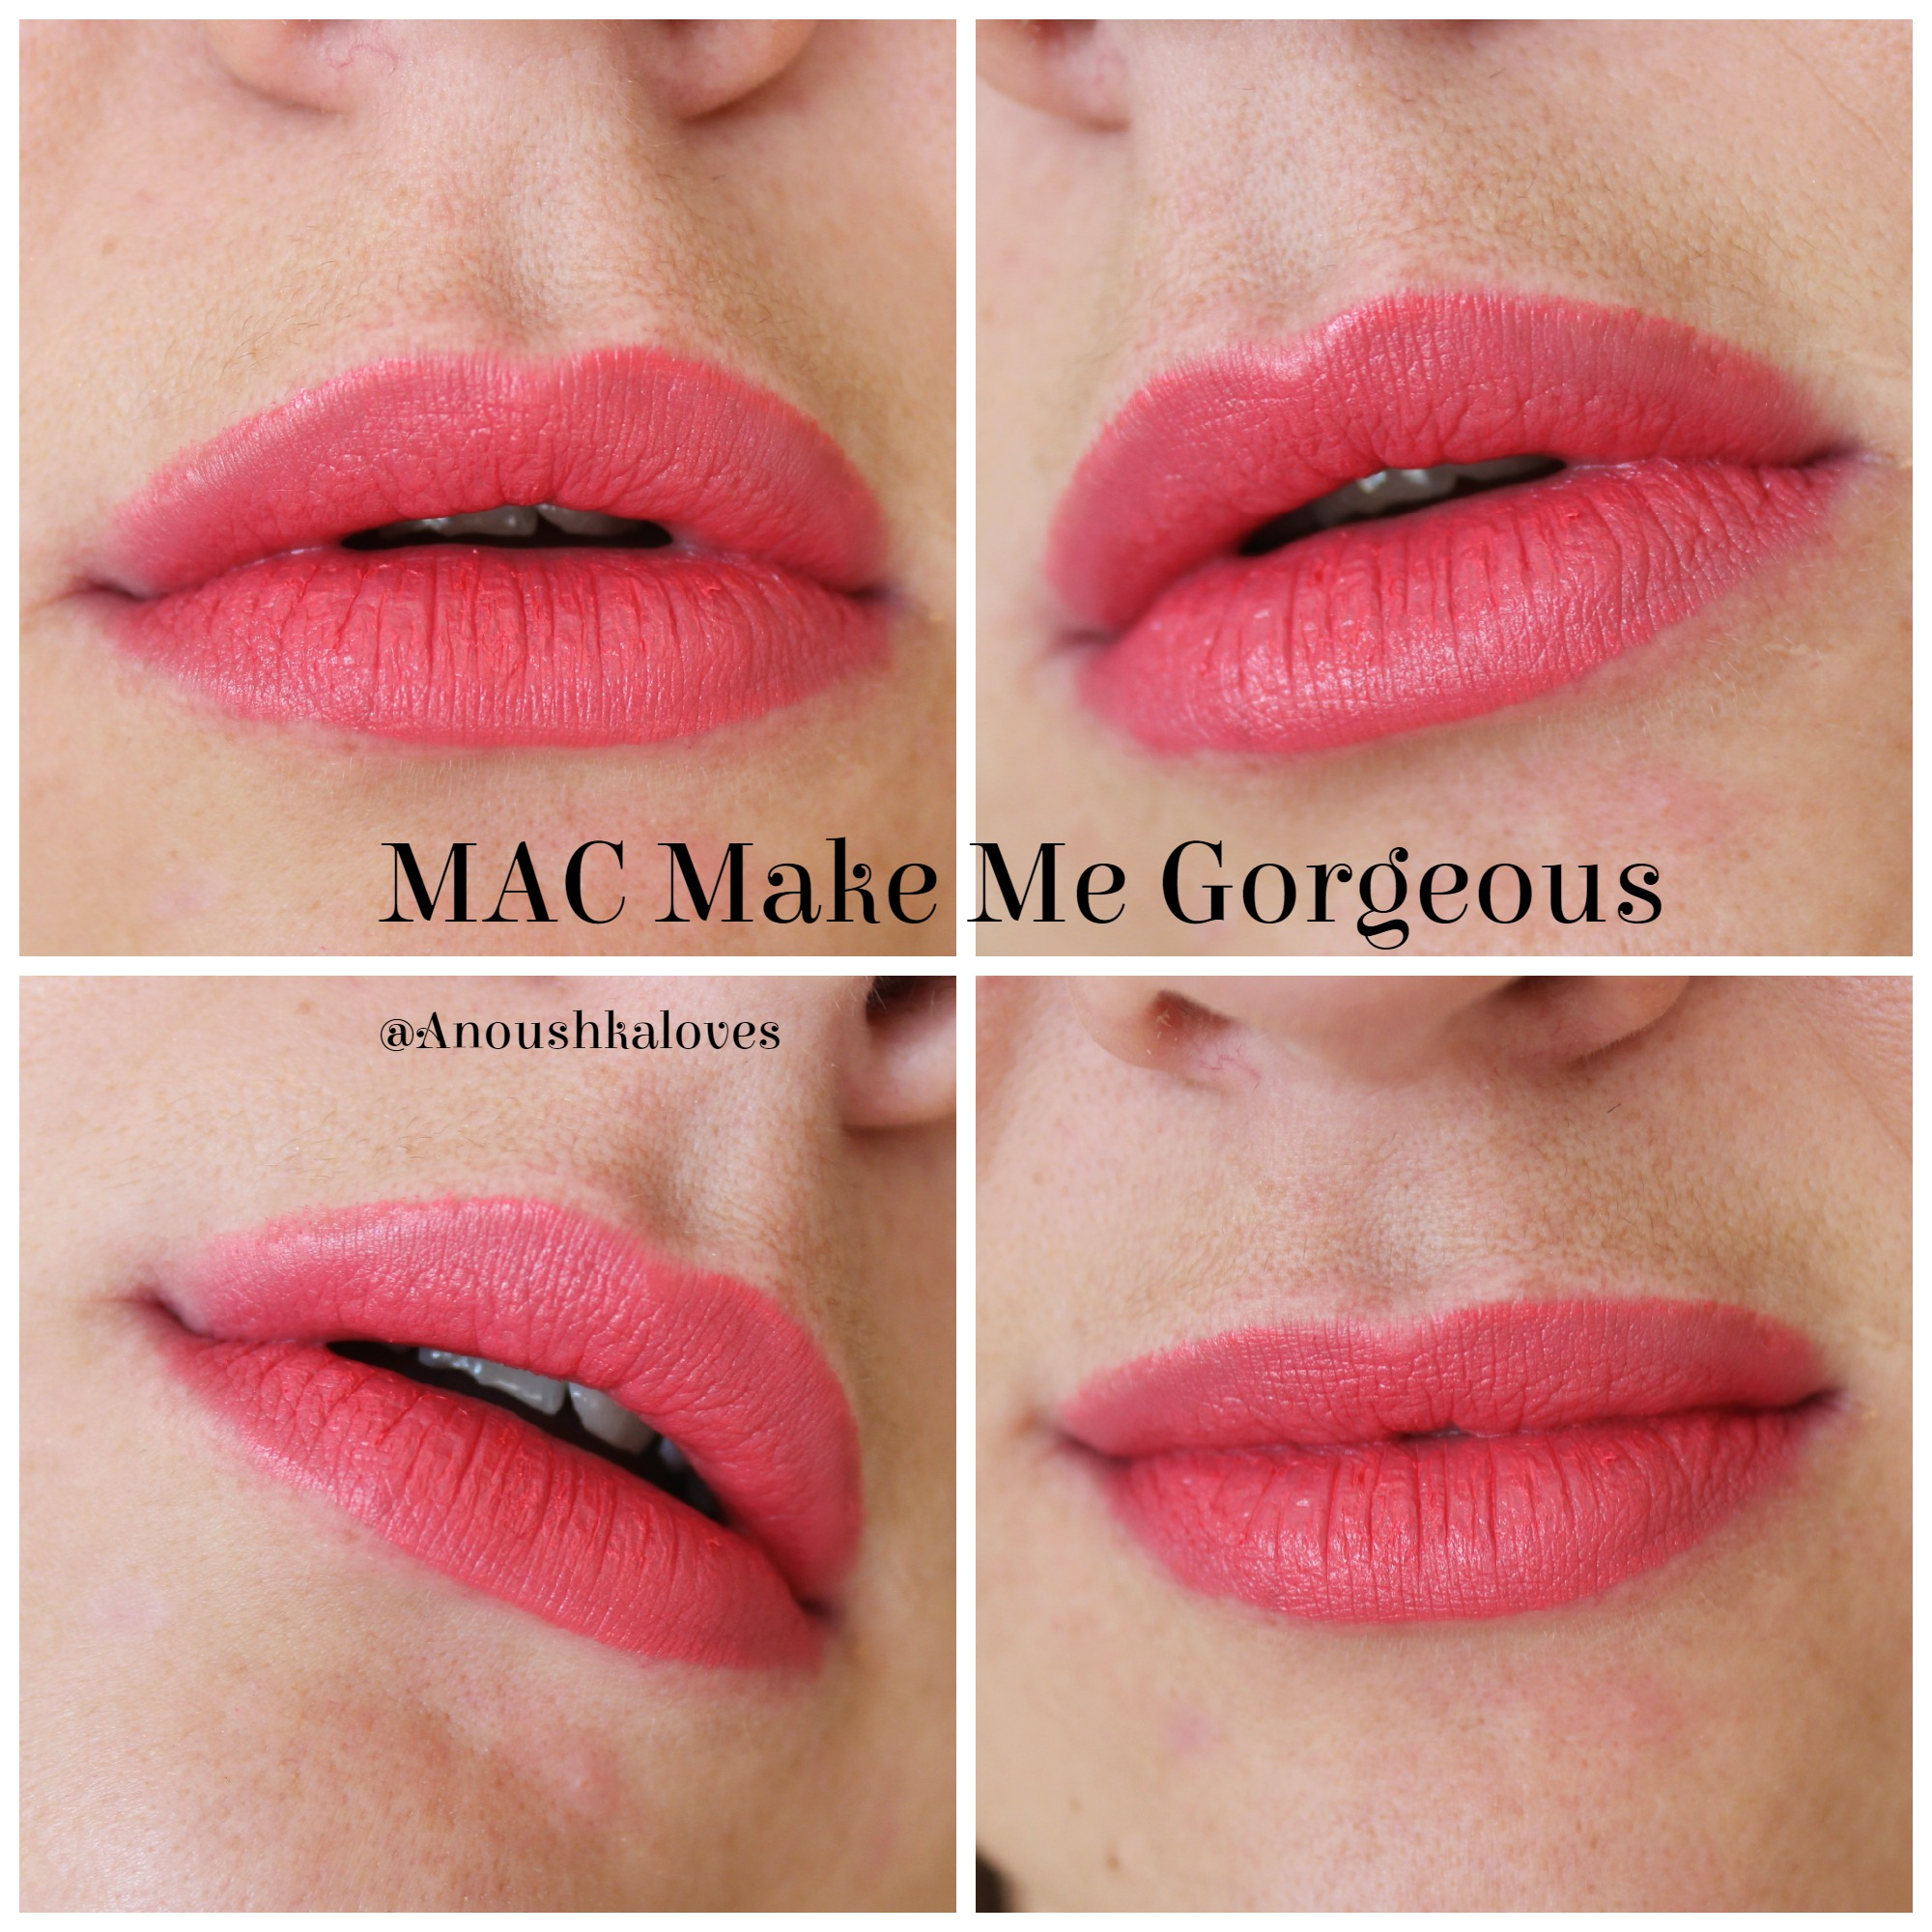 MAC is Beauty lipstick...